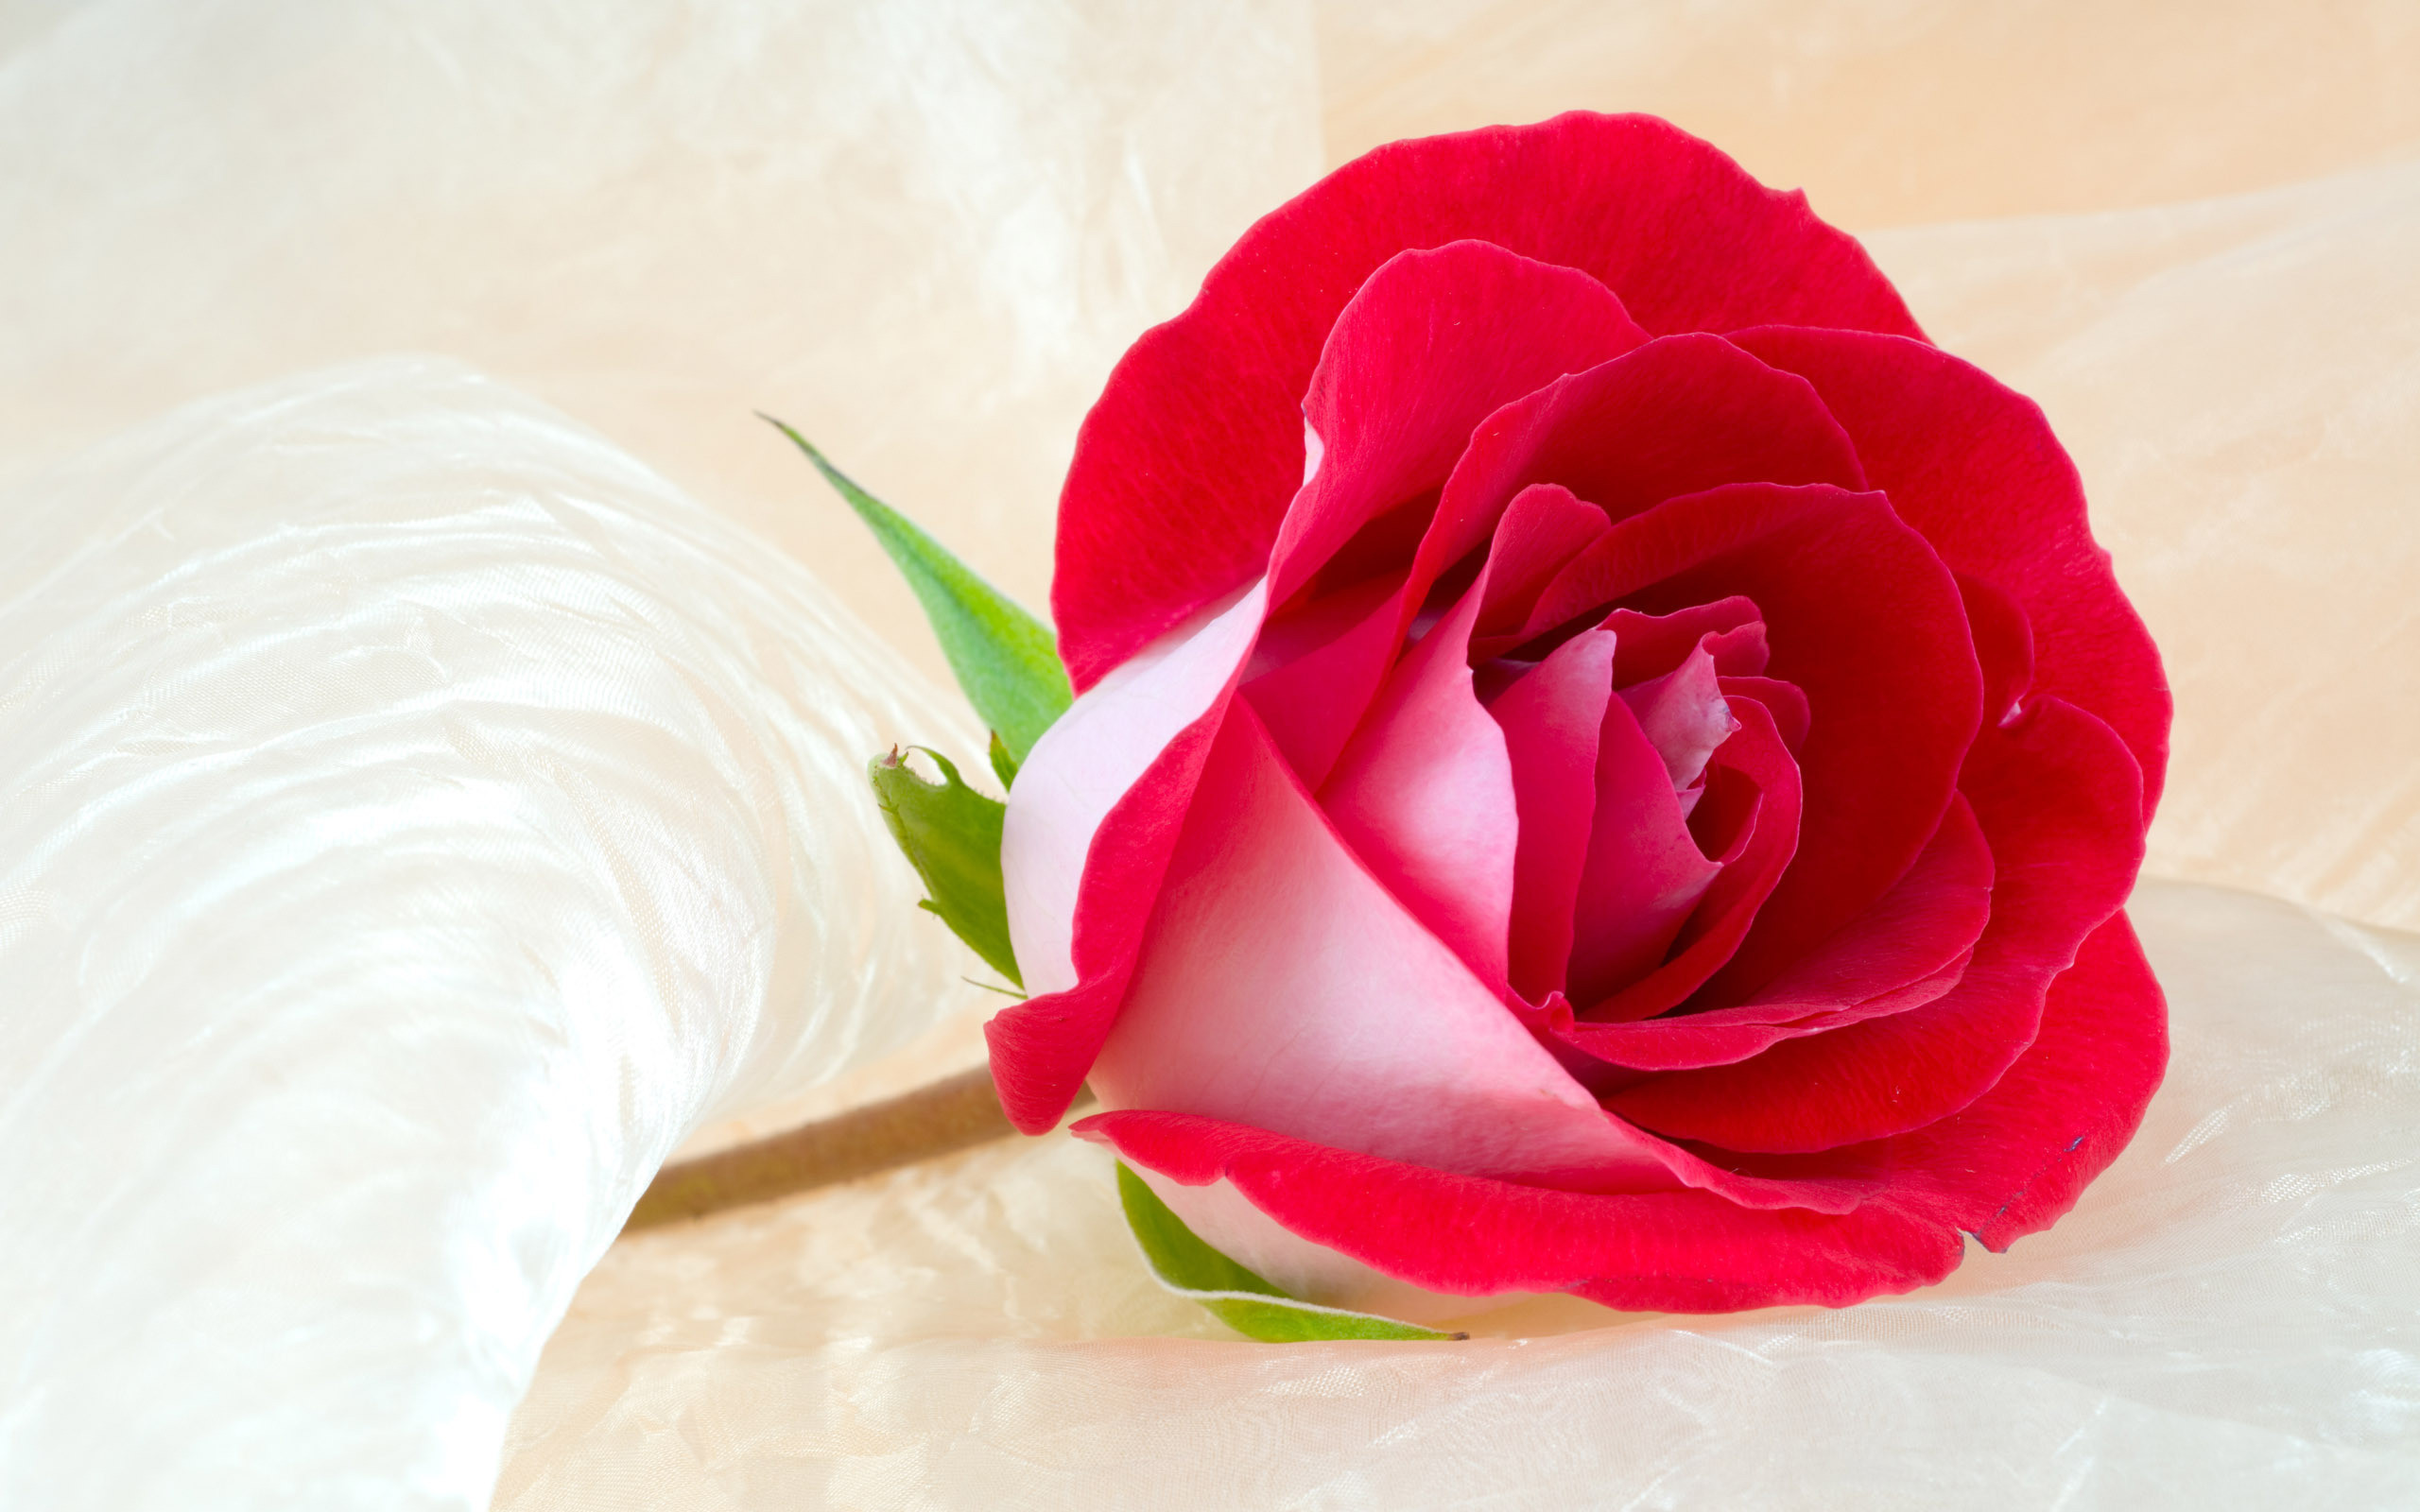 Beautiful rose flowers wallpapers 52 images 2560x1600 rose flowers wallpapers hd free izmirmasajfo